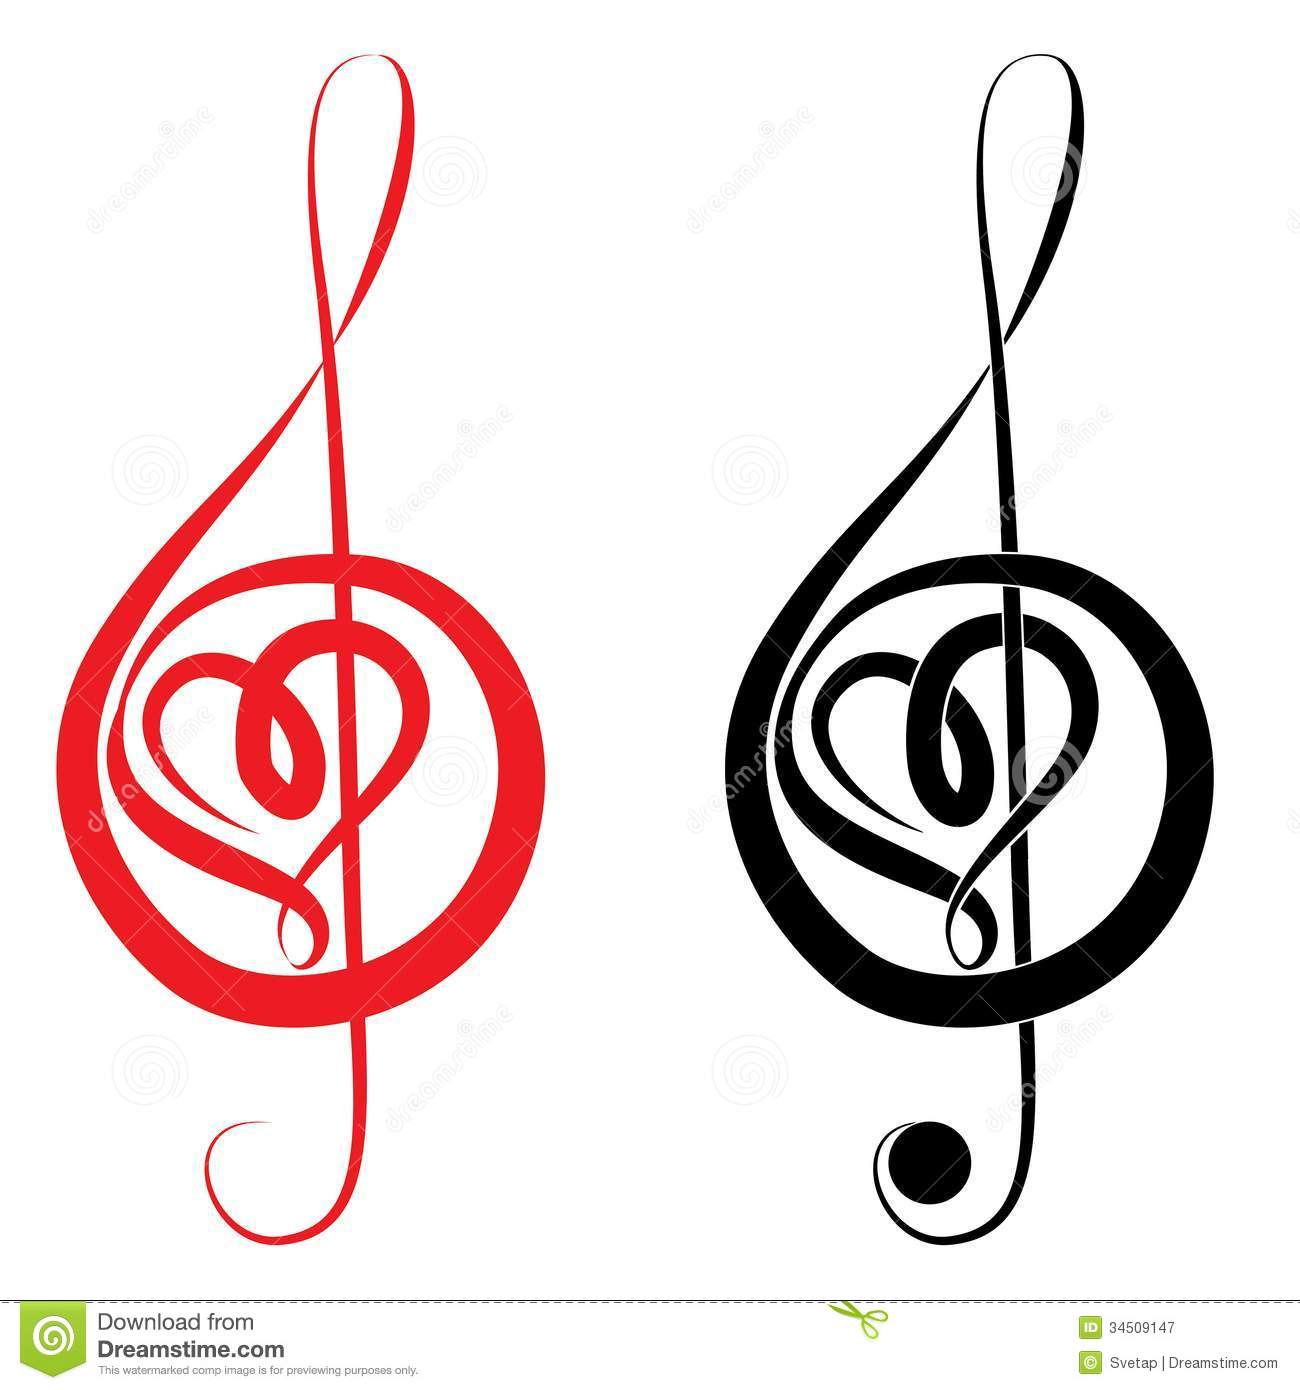 Heart Of Treble Clef And Bass Clef Royalty Free Stock Photography ...